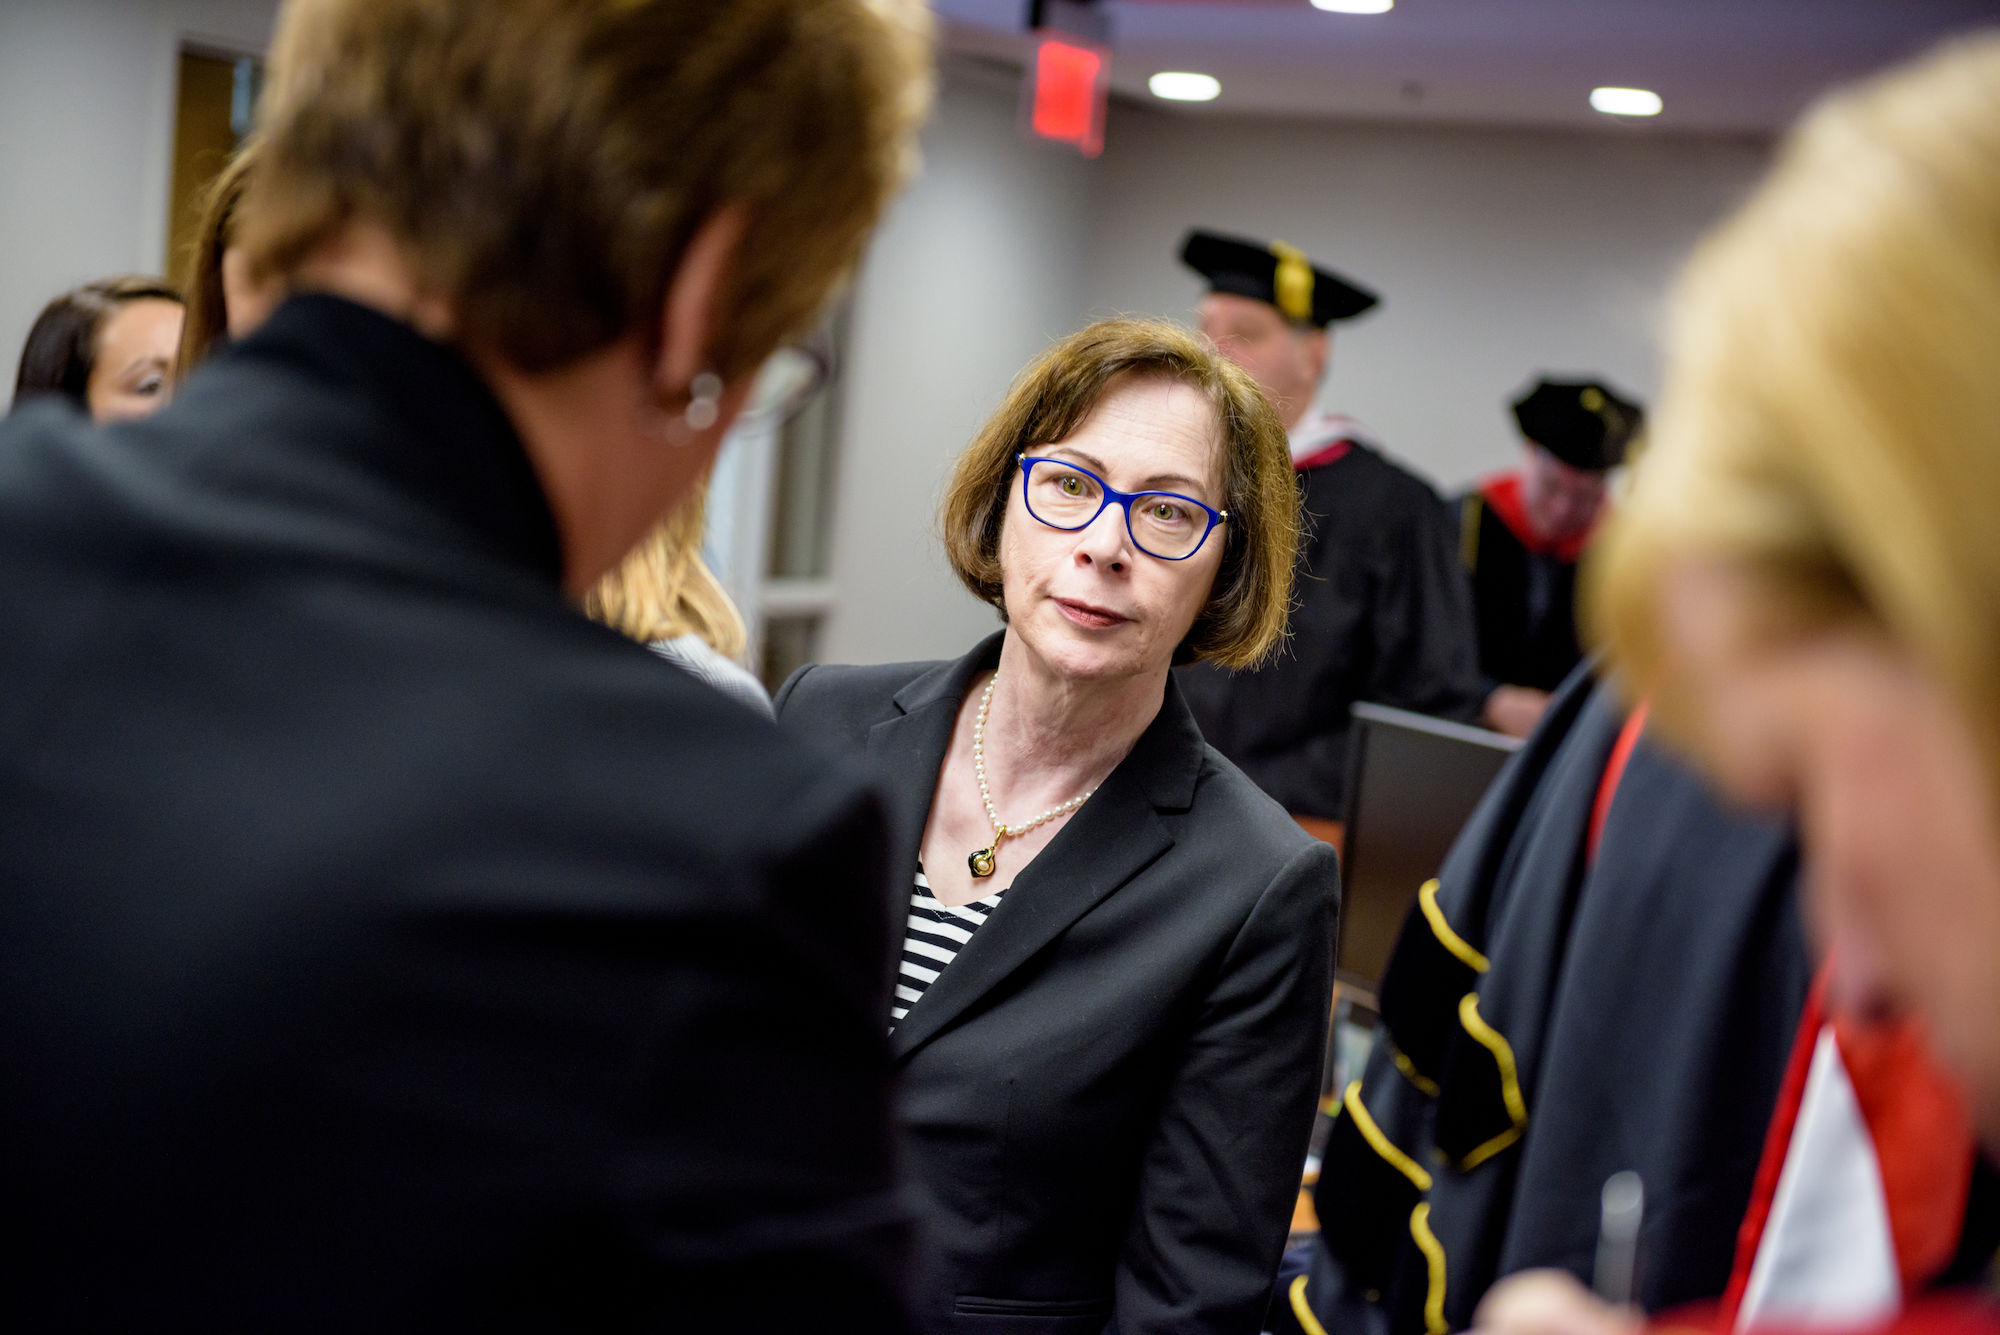 RHIT_Commencement_Platform_Party_Robing-21567.jpg